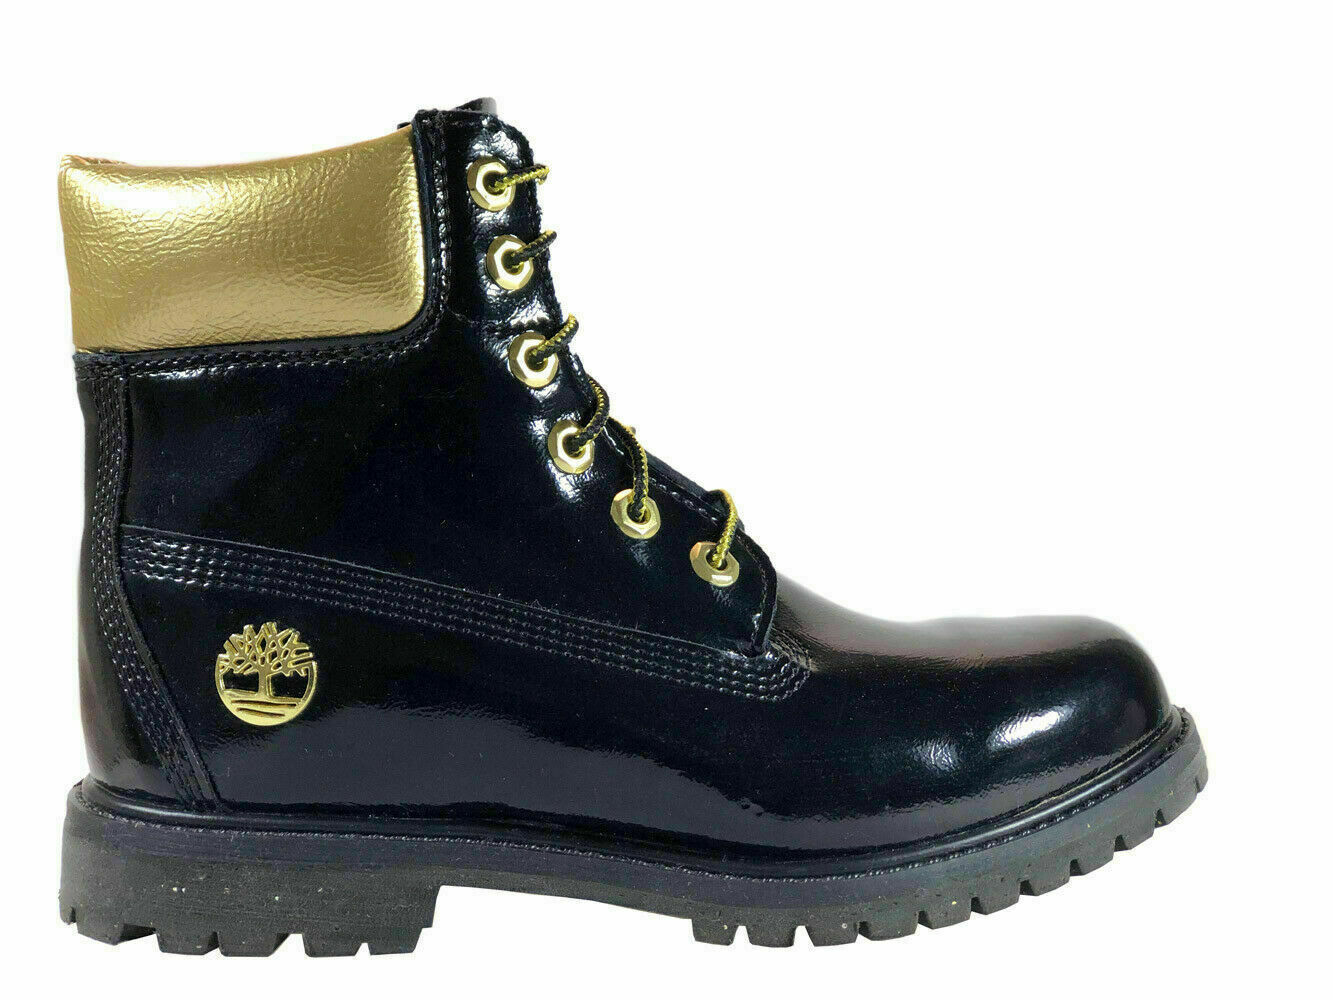 "TIMBERLAND WOMENS 6"" LIMITED MIDNIGHT COUNTDOWN WATERPROOF BLACK BOOTS USA A1U6H - $91.99"